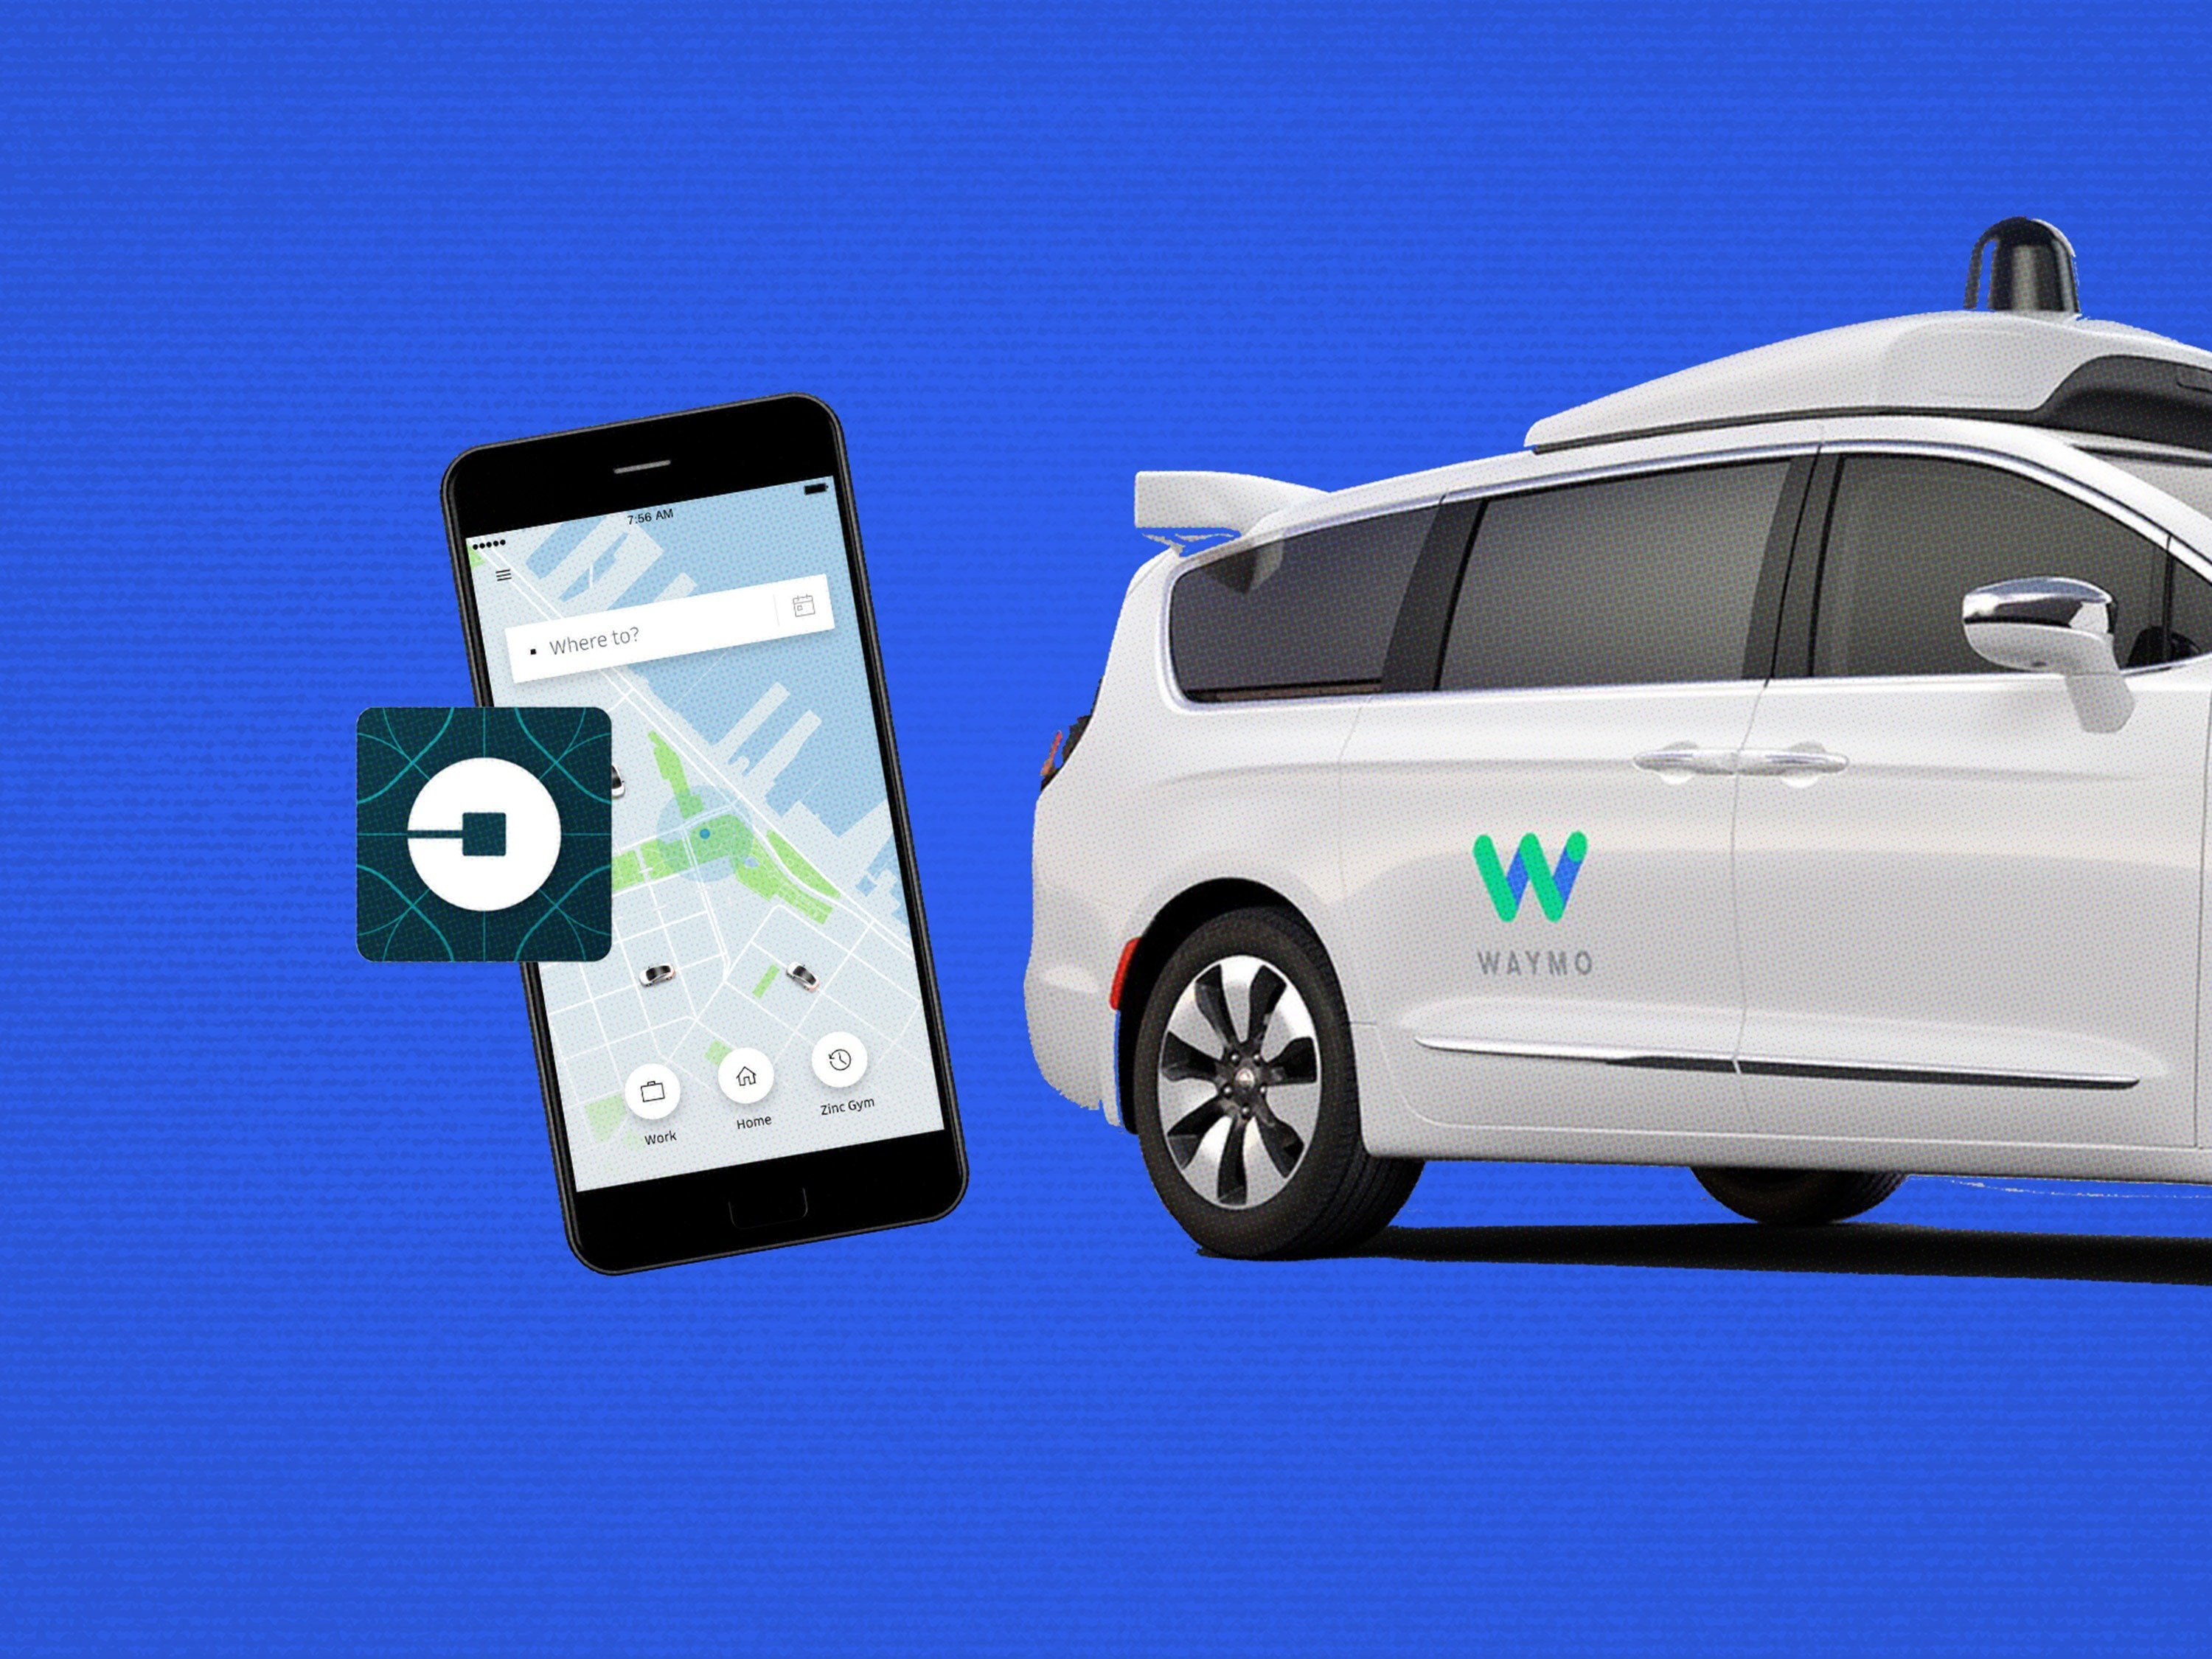 Waymo and Uber reach settlement in trade secret case - attorney